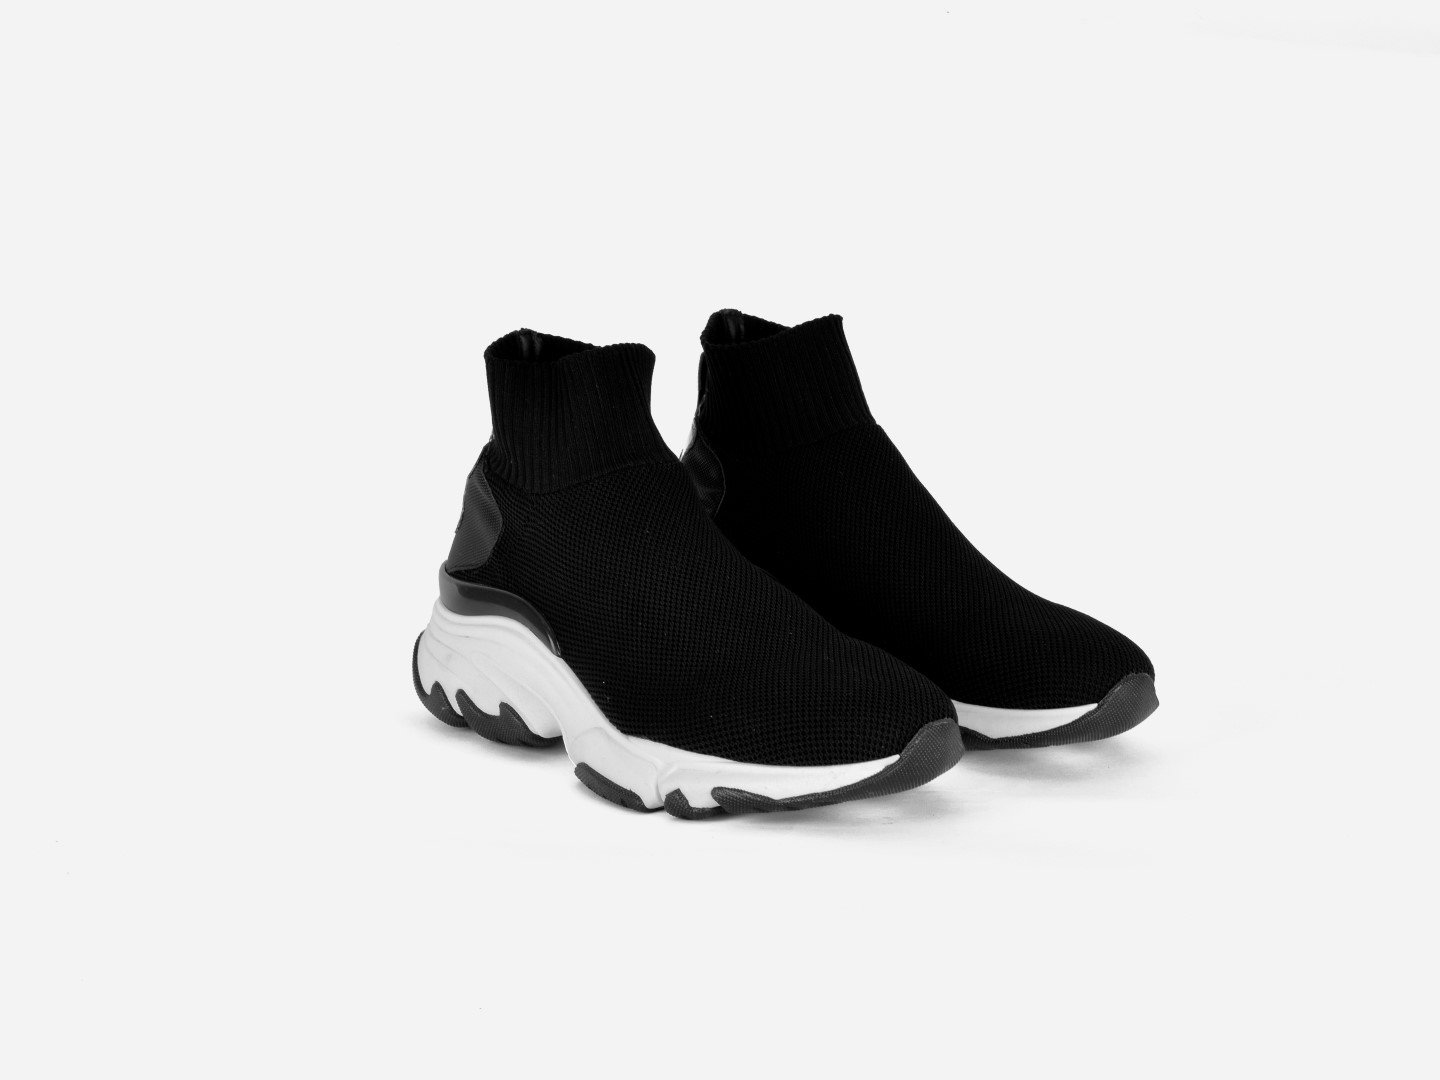 pregis ryder black sock oversized runner sneaker designed in London